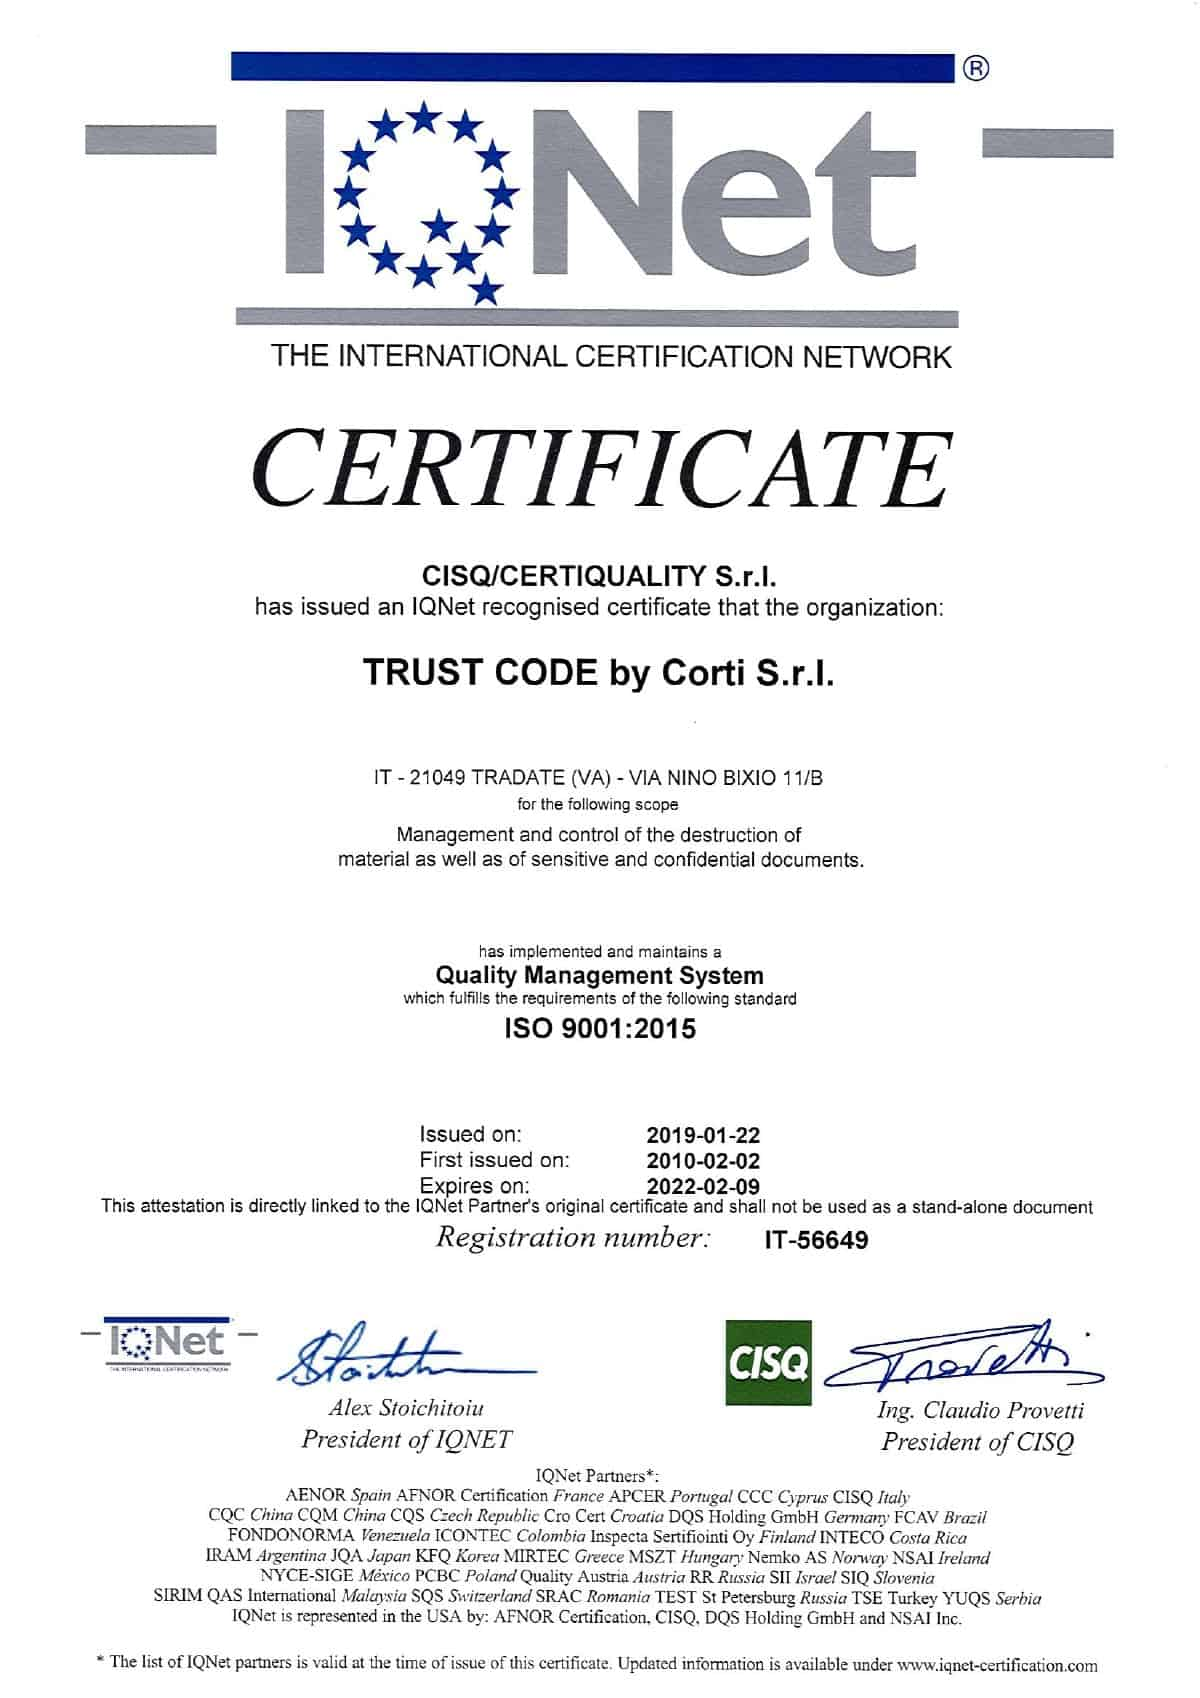 Sensitive and confidential destruction certification